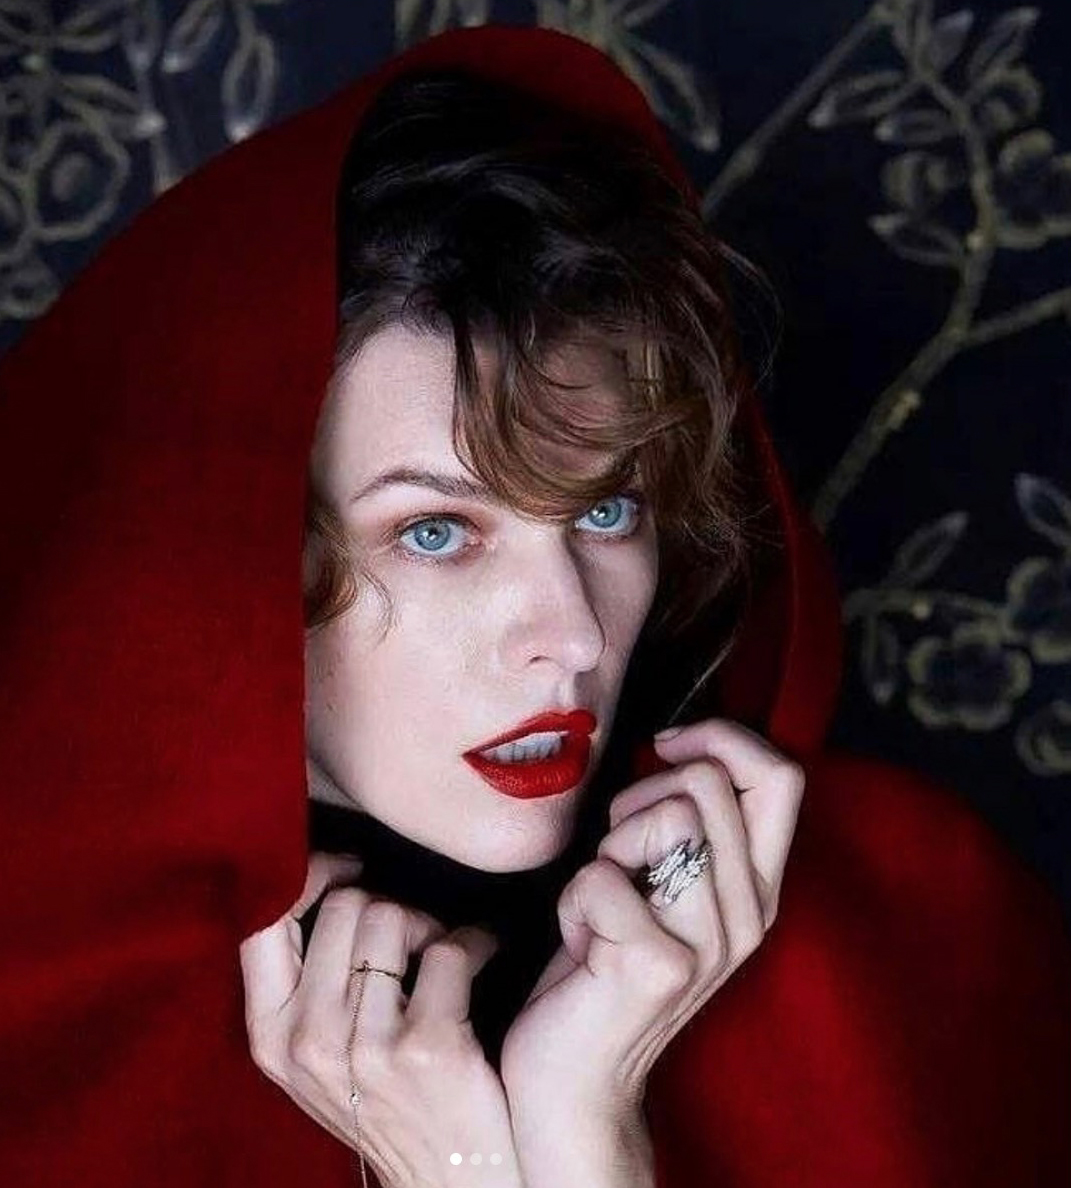 Photos Milla Jovovich nudes (37 foto and video), Pussy, Hot, Feet, lingerie 2017